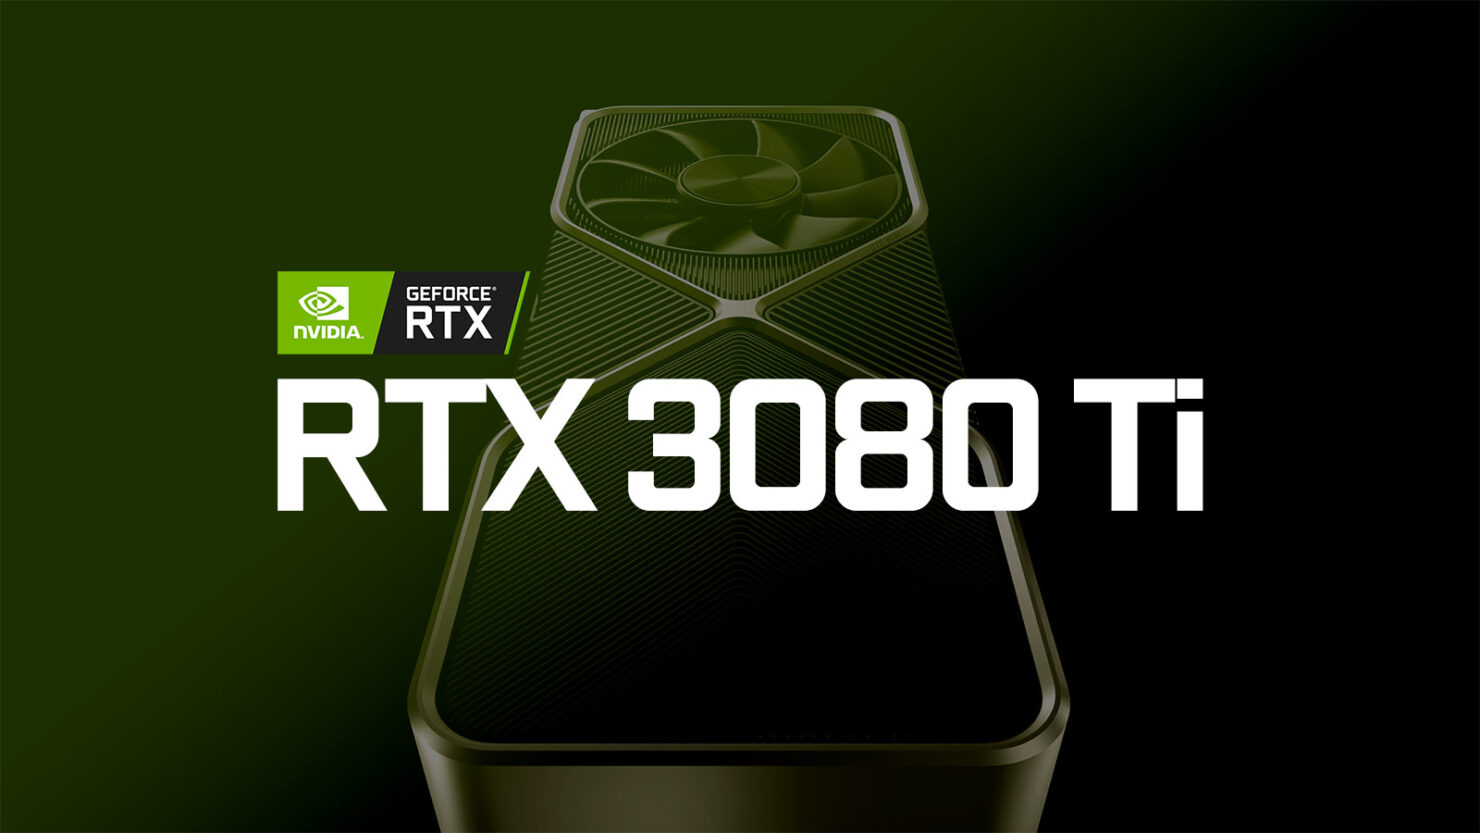 Gigabyte Submits 12 NVIDIA GeForce RTX 3080 Ti 12 GB Graphics Card & A CMP 30HX To The EEC 2